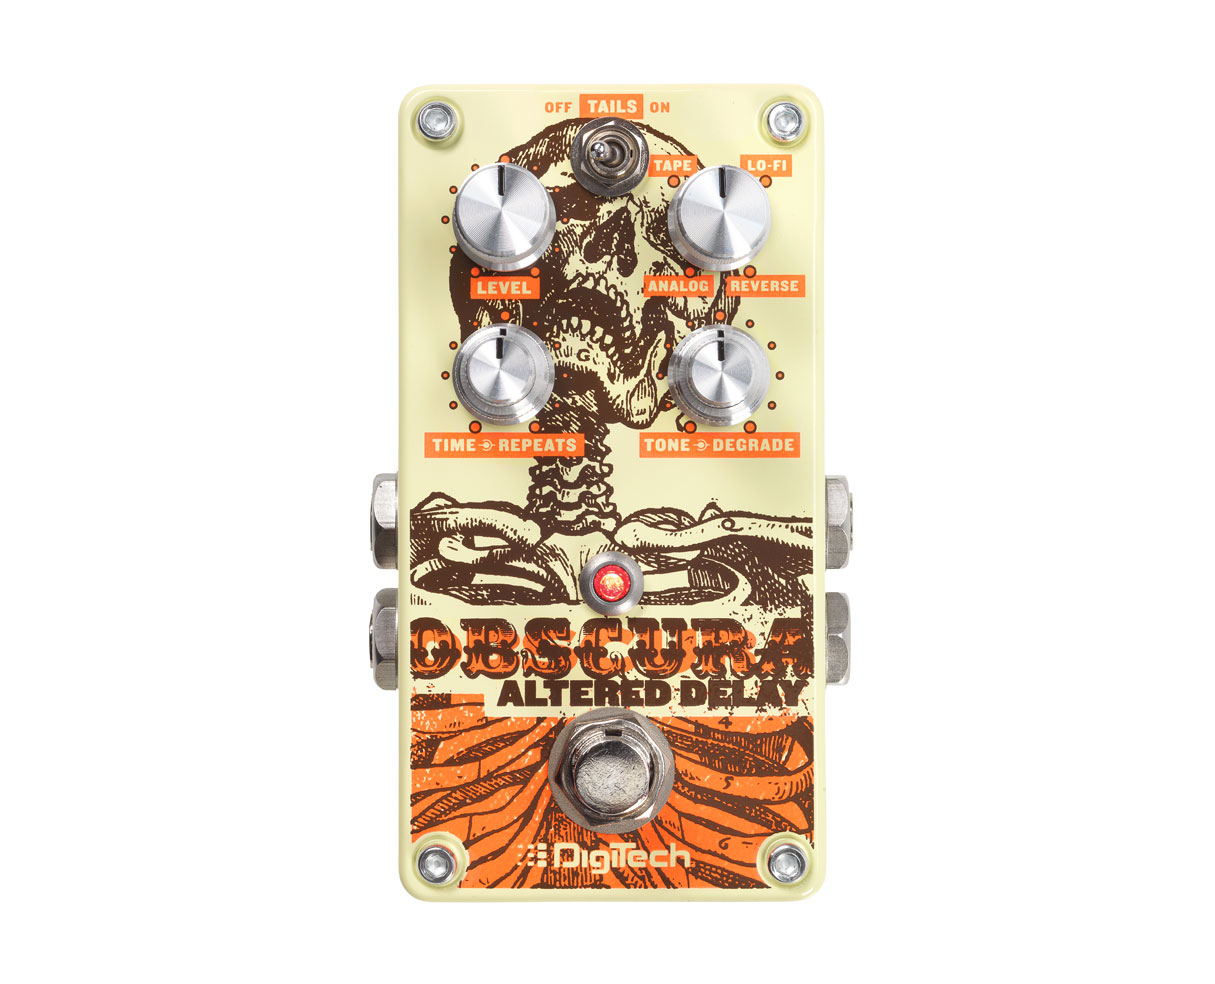 DigiTech Obscura Altered Delay Guitar Effects Pedal by